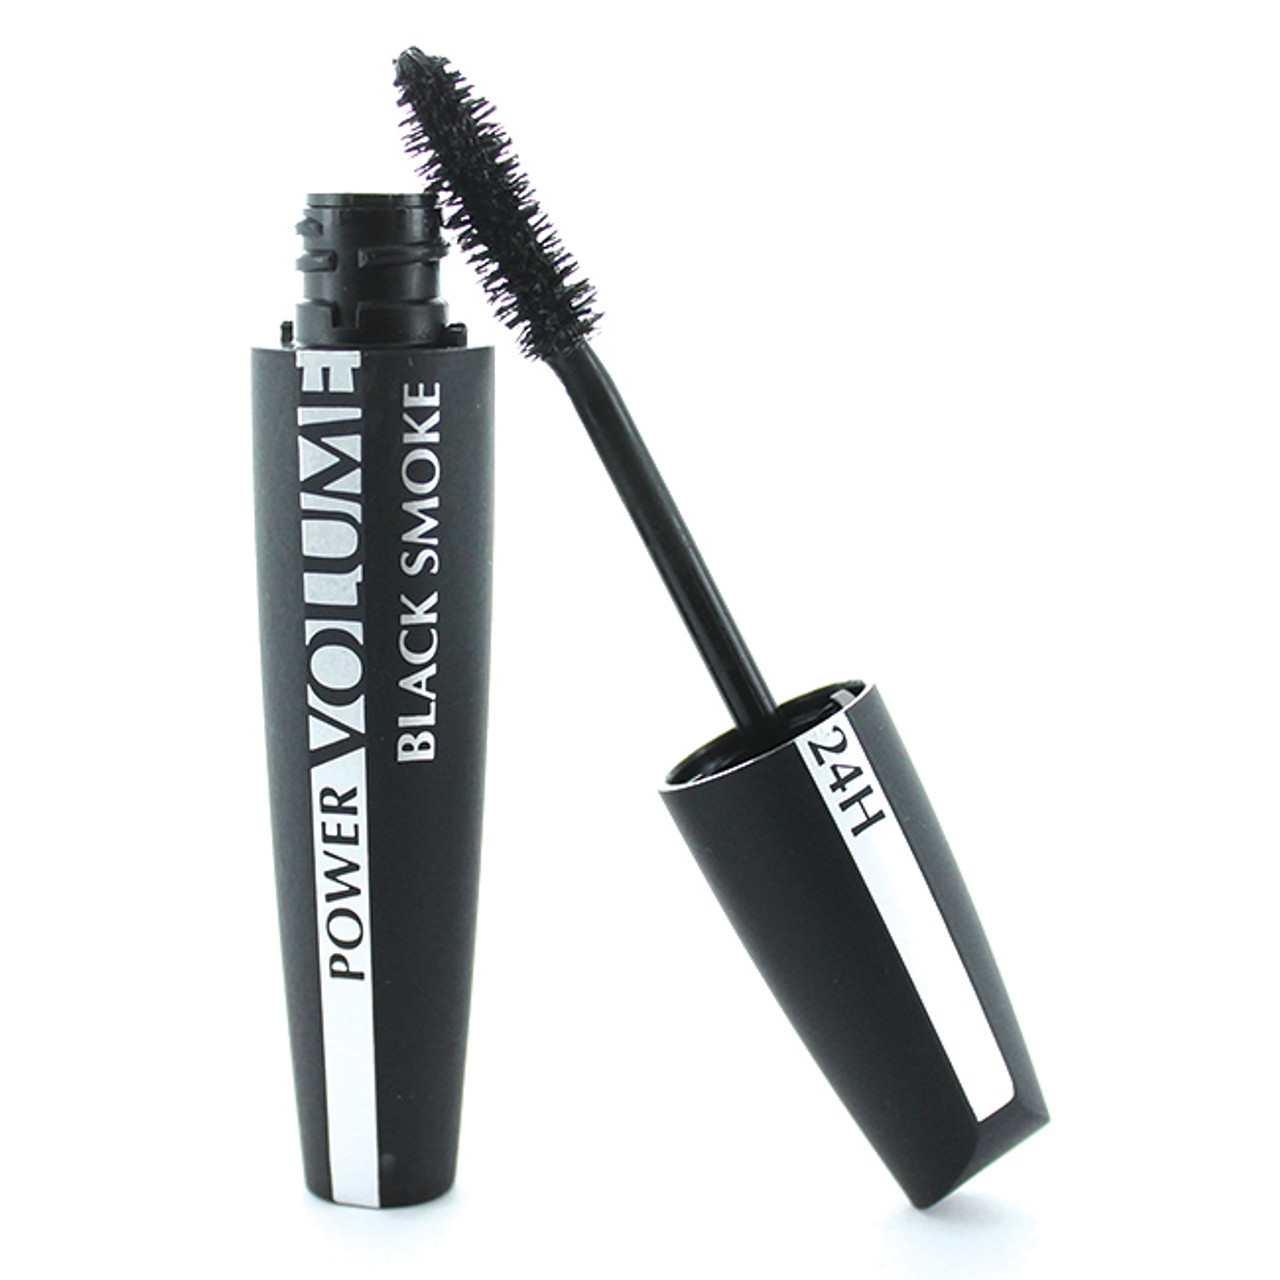 fbd0baad066 L'Oreal Voluminous Power Volume 24Hour Mascara - BuyMeBeauty.com